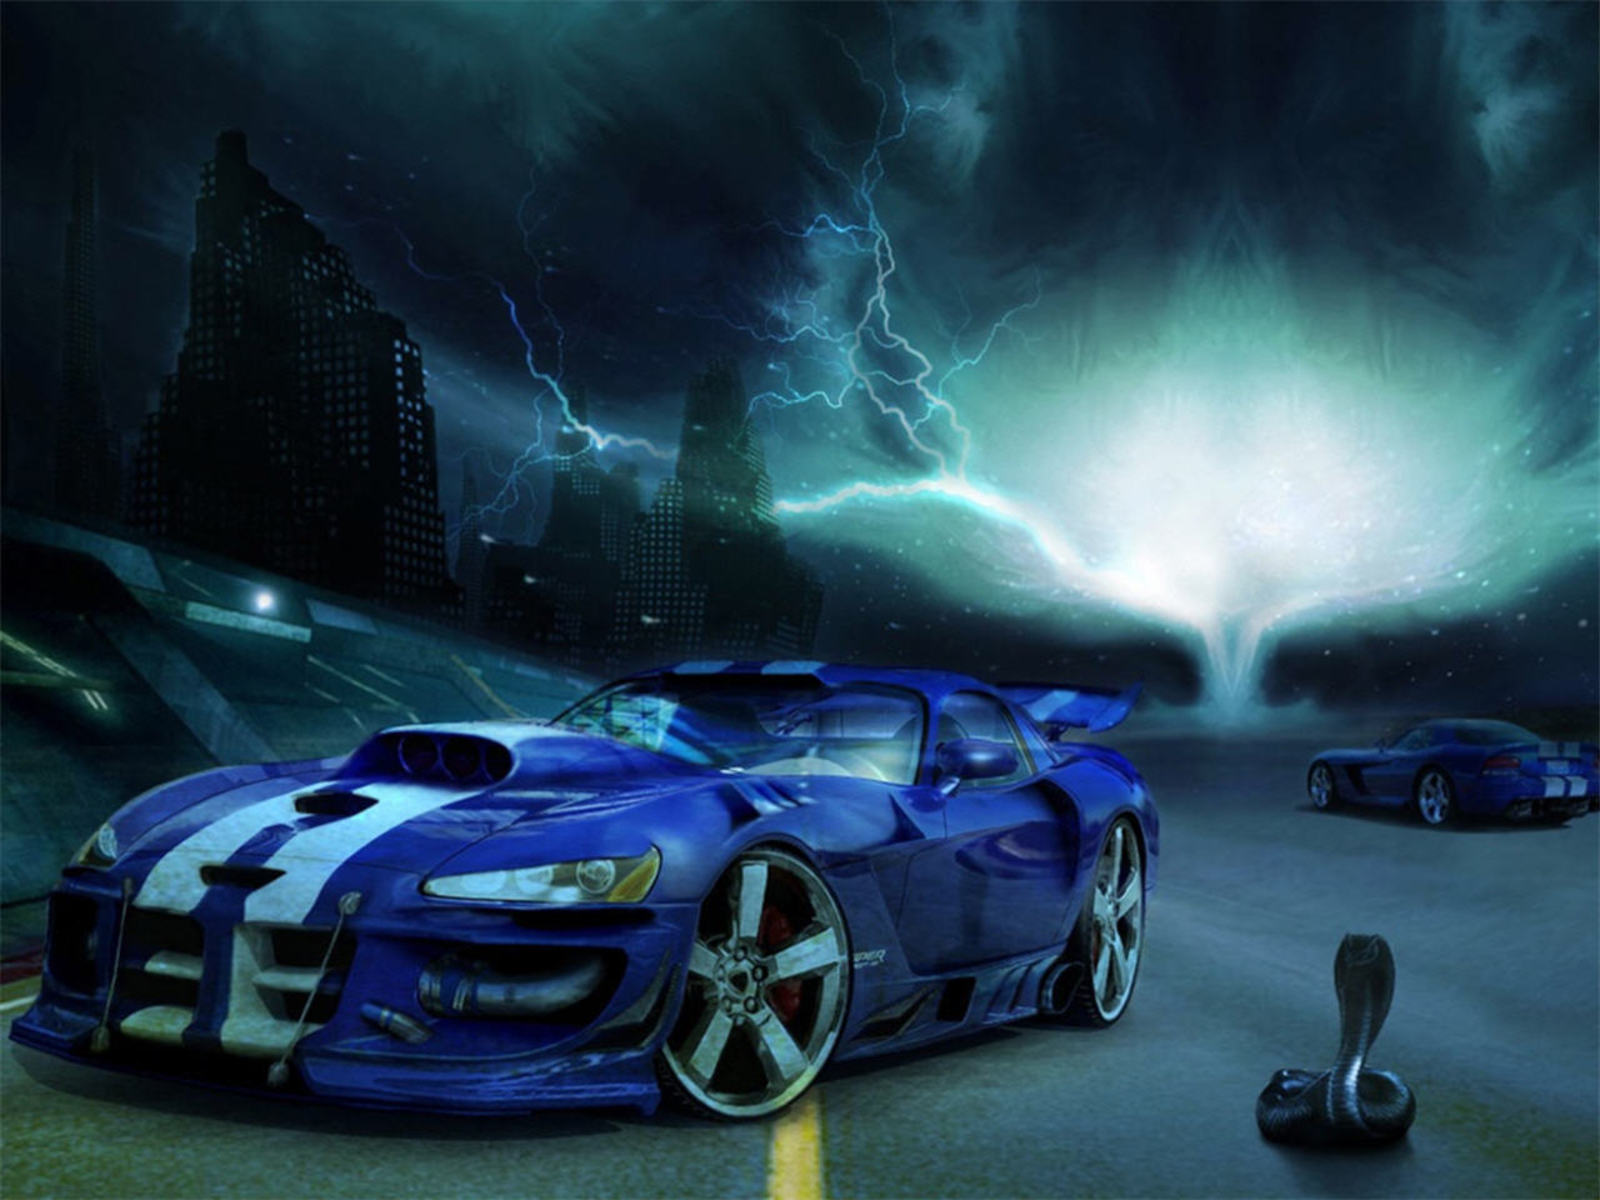 Blue Car Wallpapers, Best Blue Car Pictures and Wallpapers, Cool Blue Car Pictures Wallpapers, Best Blue Car Wallpapers, Cool Blue Car Wallpapers, The Blue Car Wallpapers